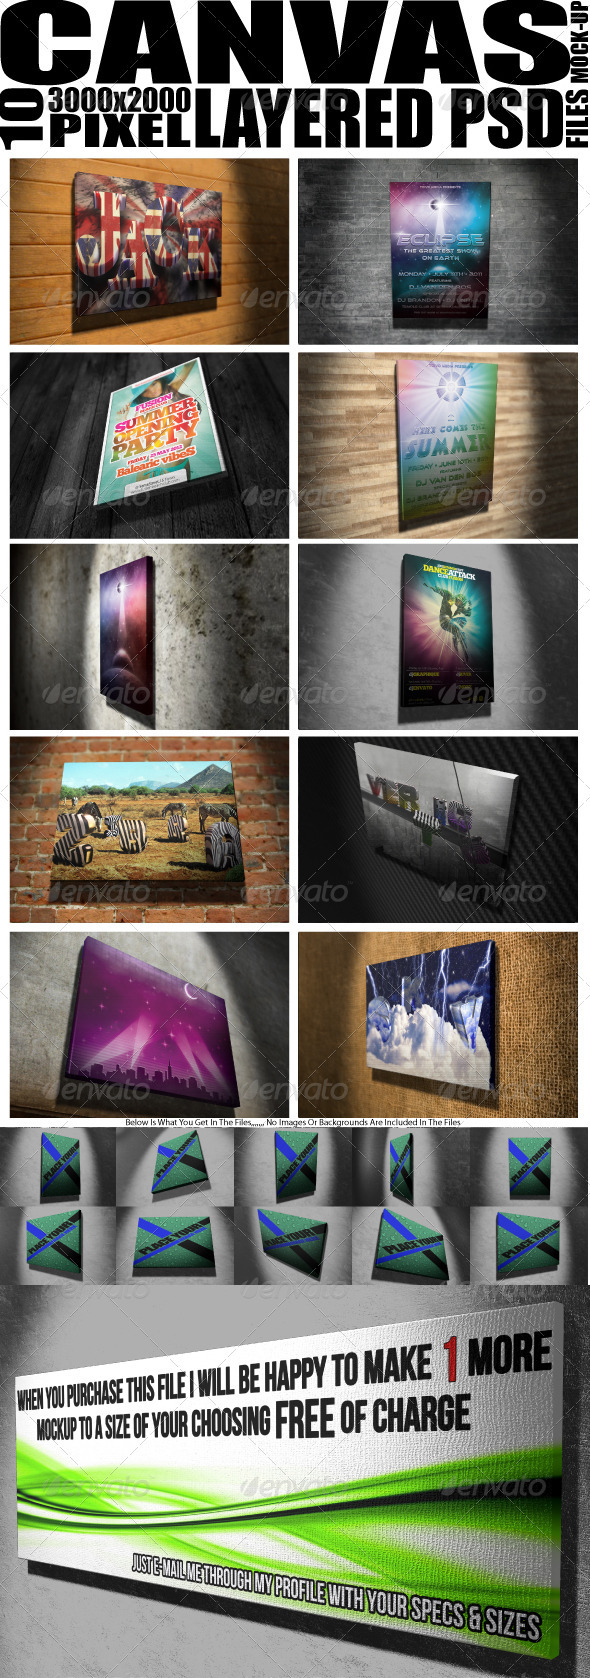 Graphic River Mock Up Canvas X 10 Graphics -  Product Mock-Ups 1395498